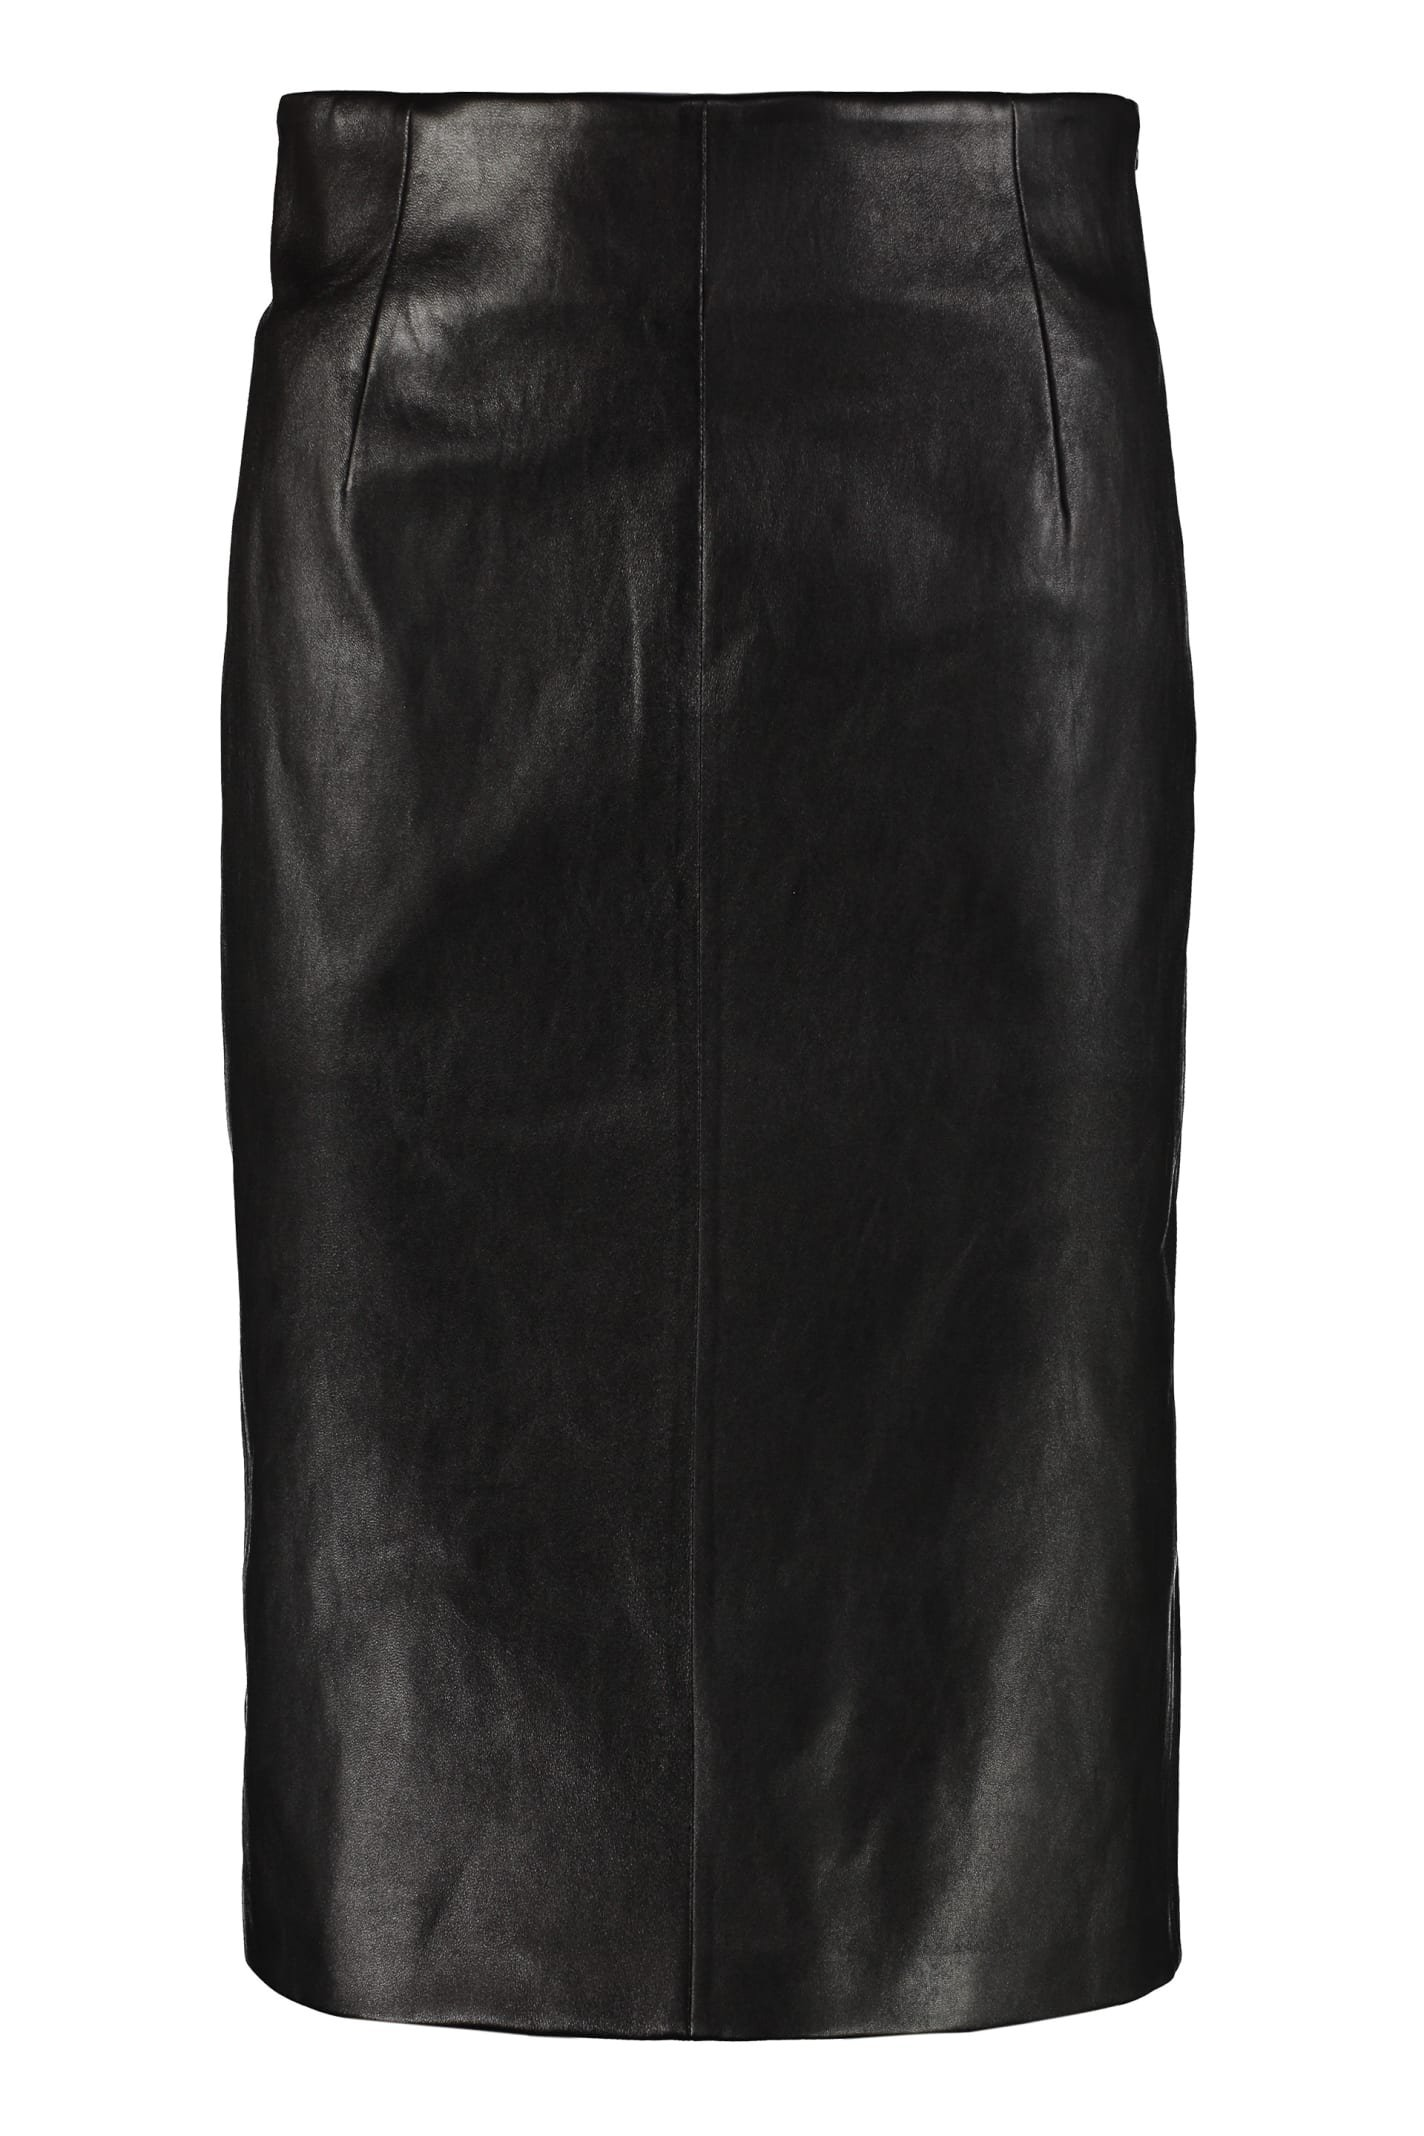 Prada Pencil Skirt With Zip